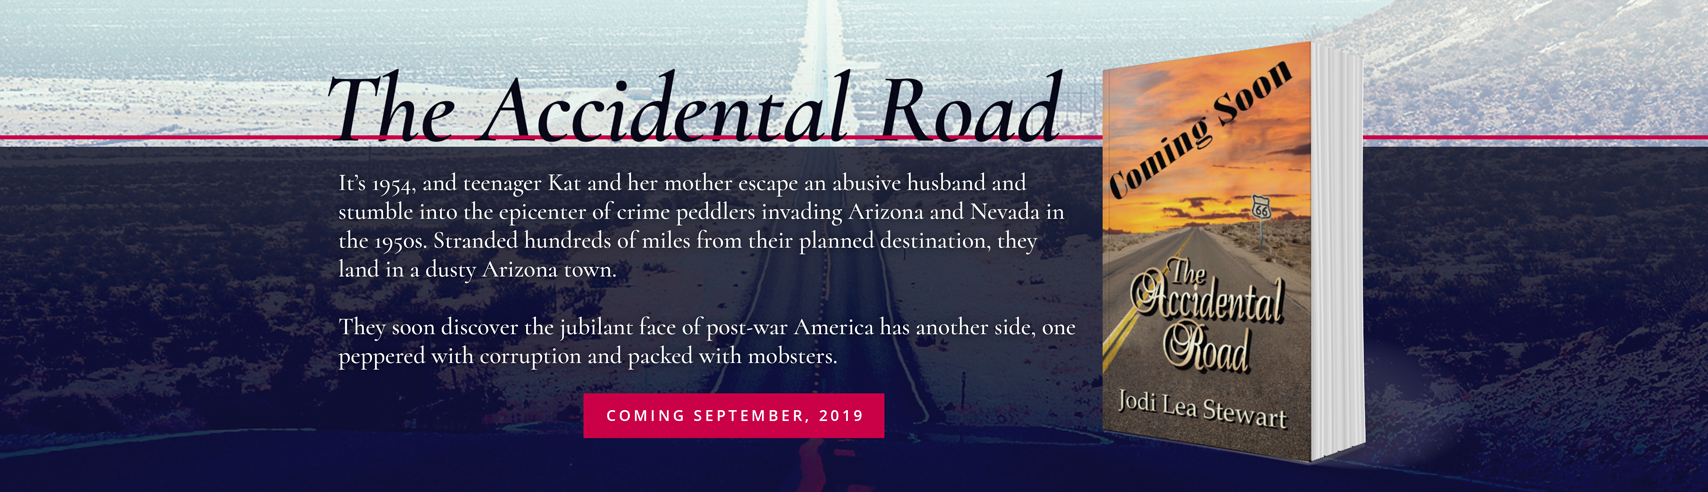 The Accidental Road - an Historic Fiction Novel by Jodi Lea Stewart